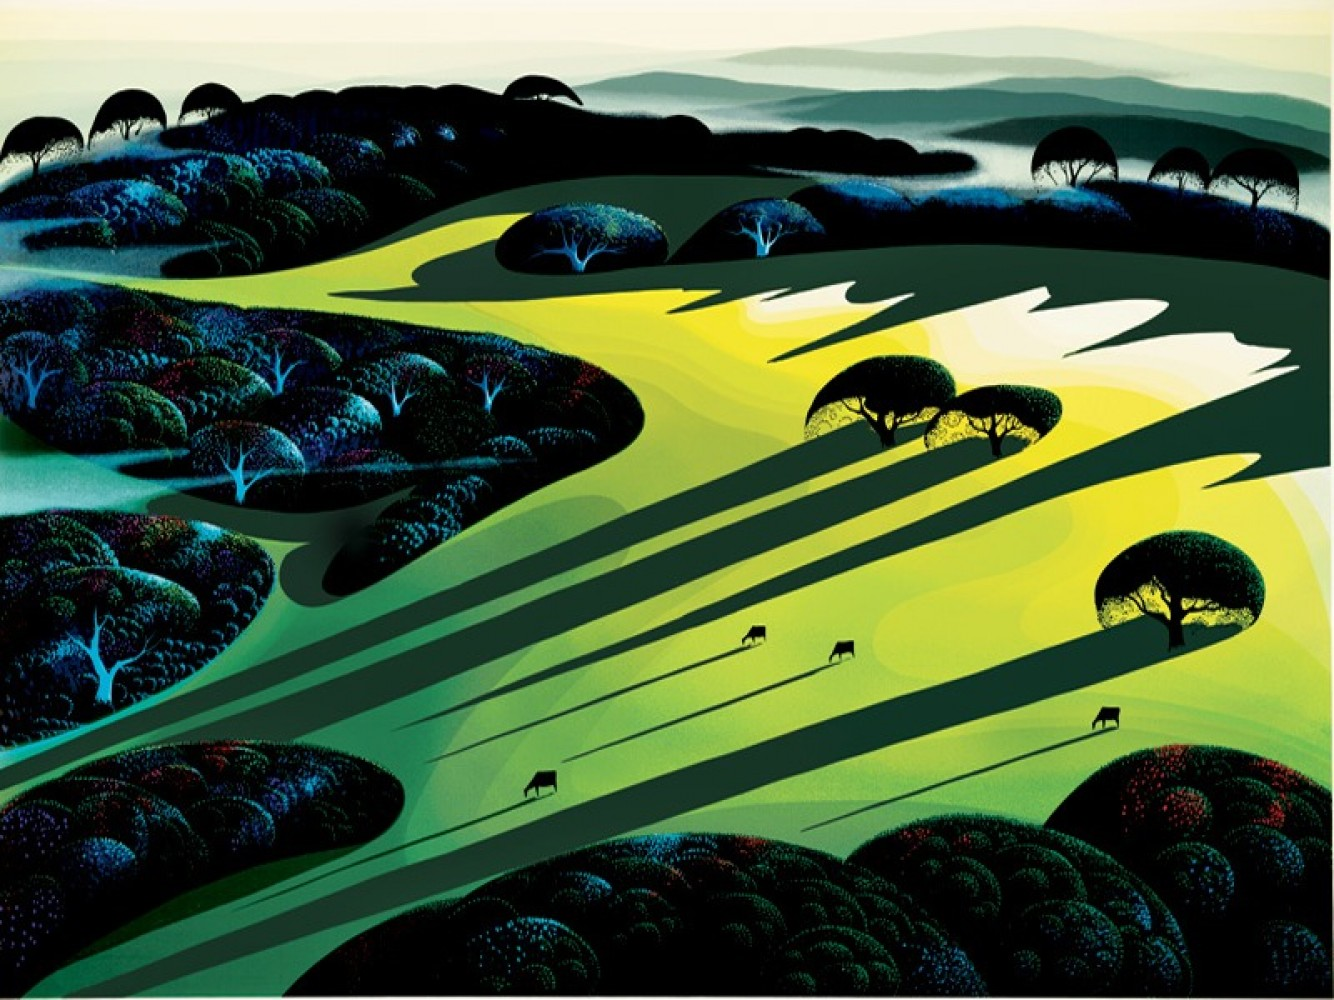 Silent Meadow 1990 by Eyvind Earle